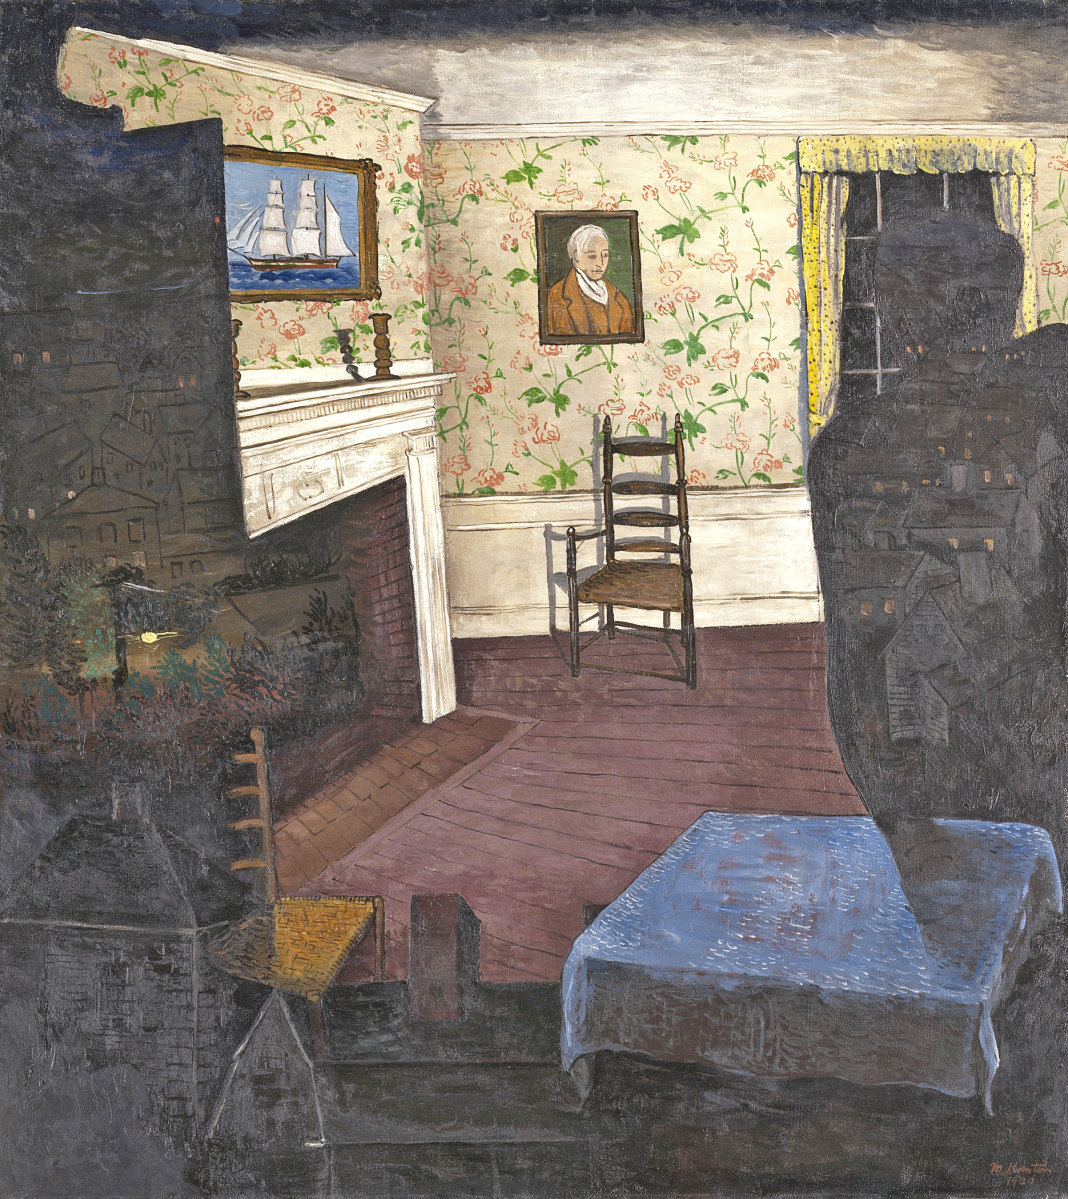 """""""Haunted House"""" by Morris Kantor (American, 1896-1974), 1930. Oil on canvas. Mr and Mrs Frank G. Logan Purchase Prize Fund. The Art Institute of Chicago. Photo The Art Institute of Chicago/Art Resource, NY. ©Estate of Morris Kantor."""